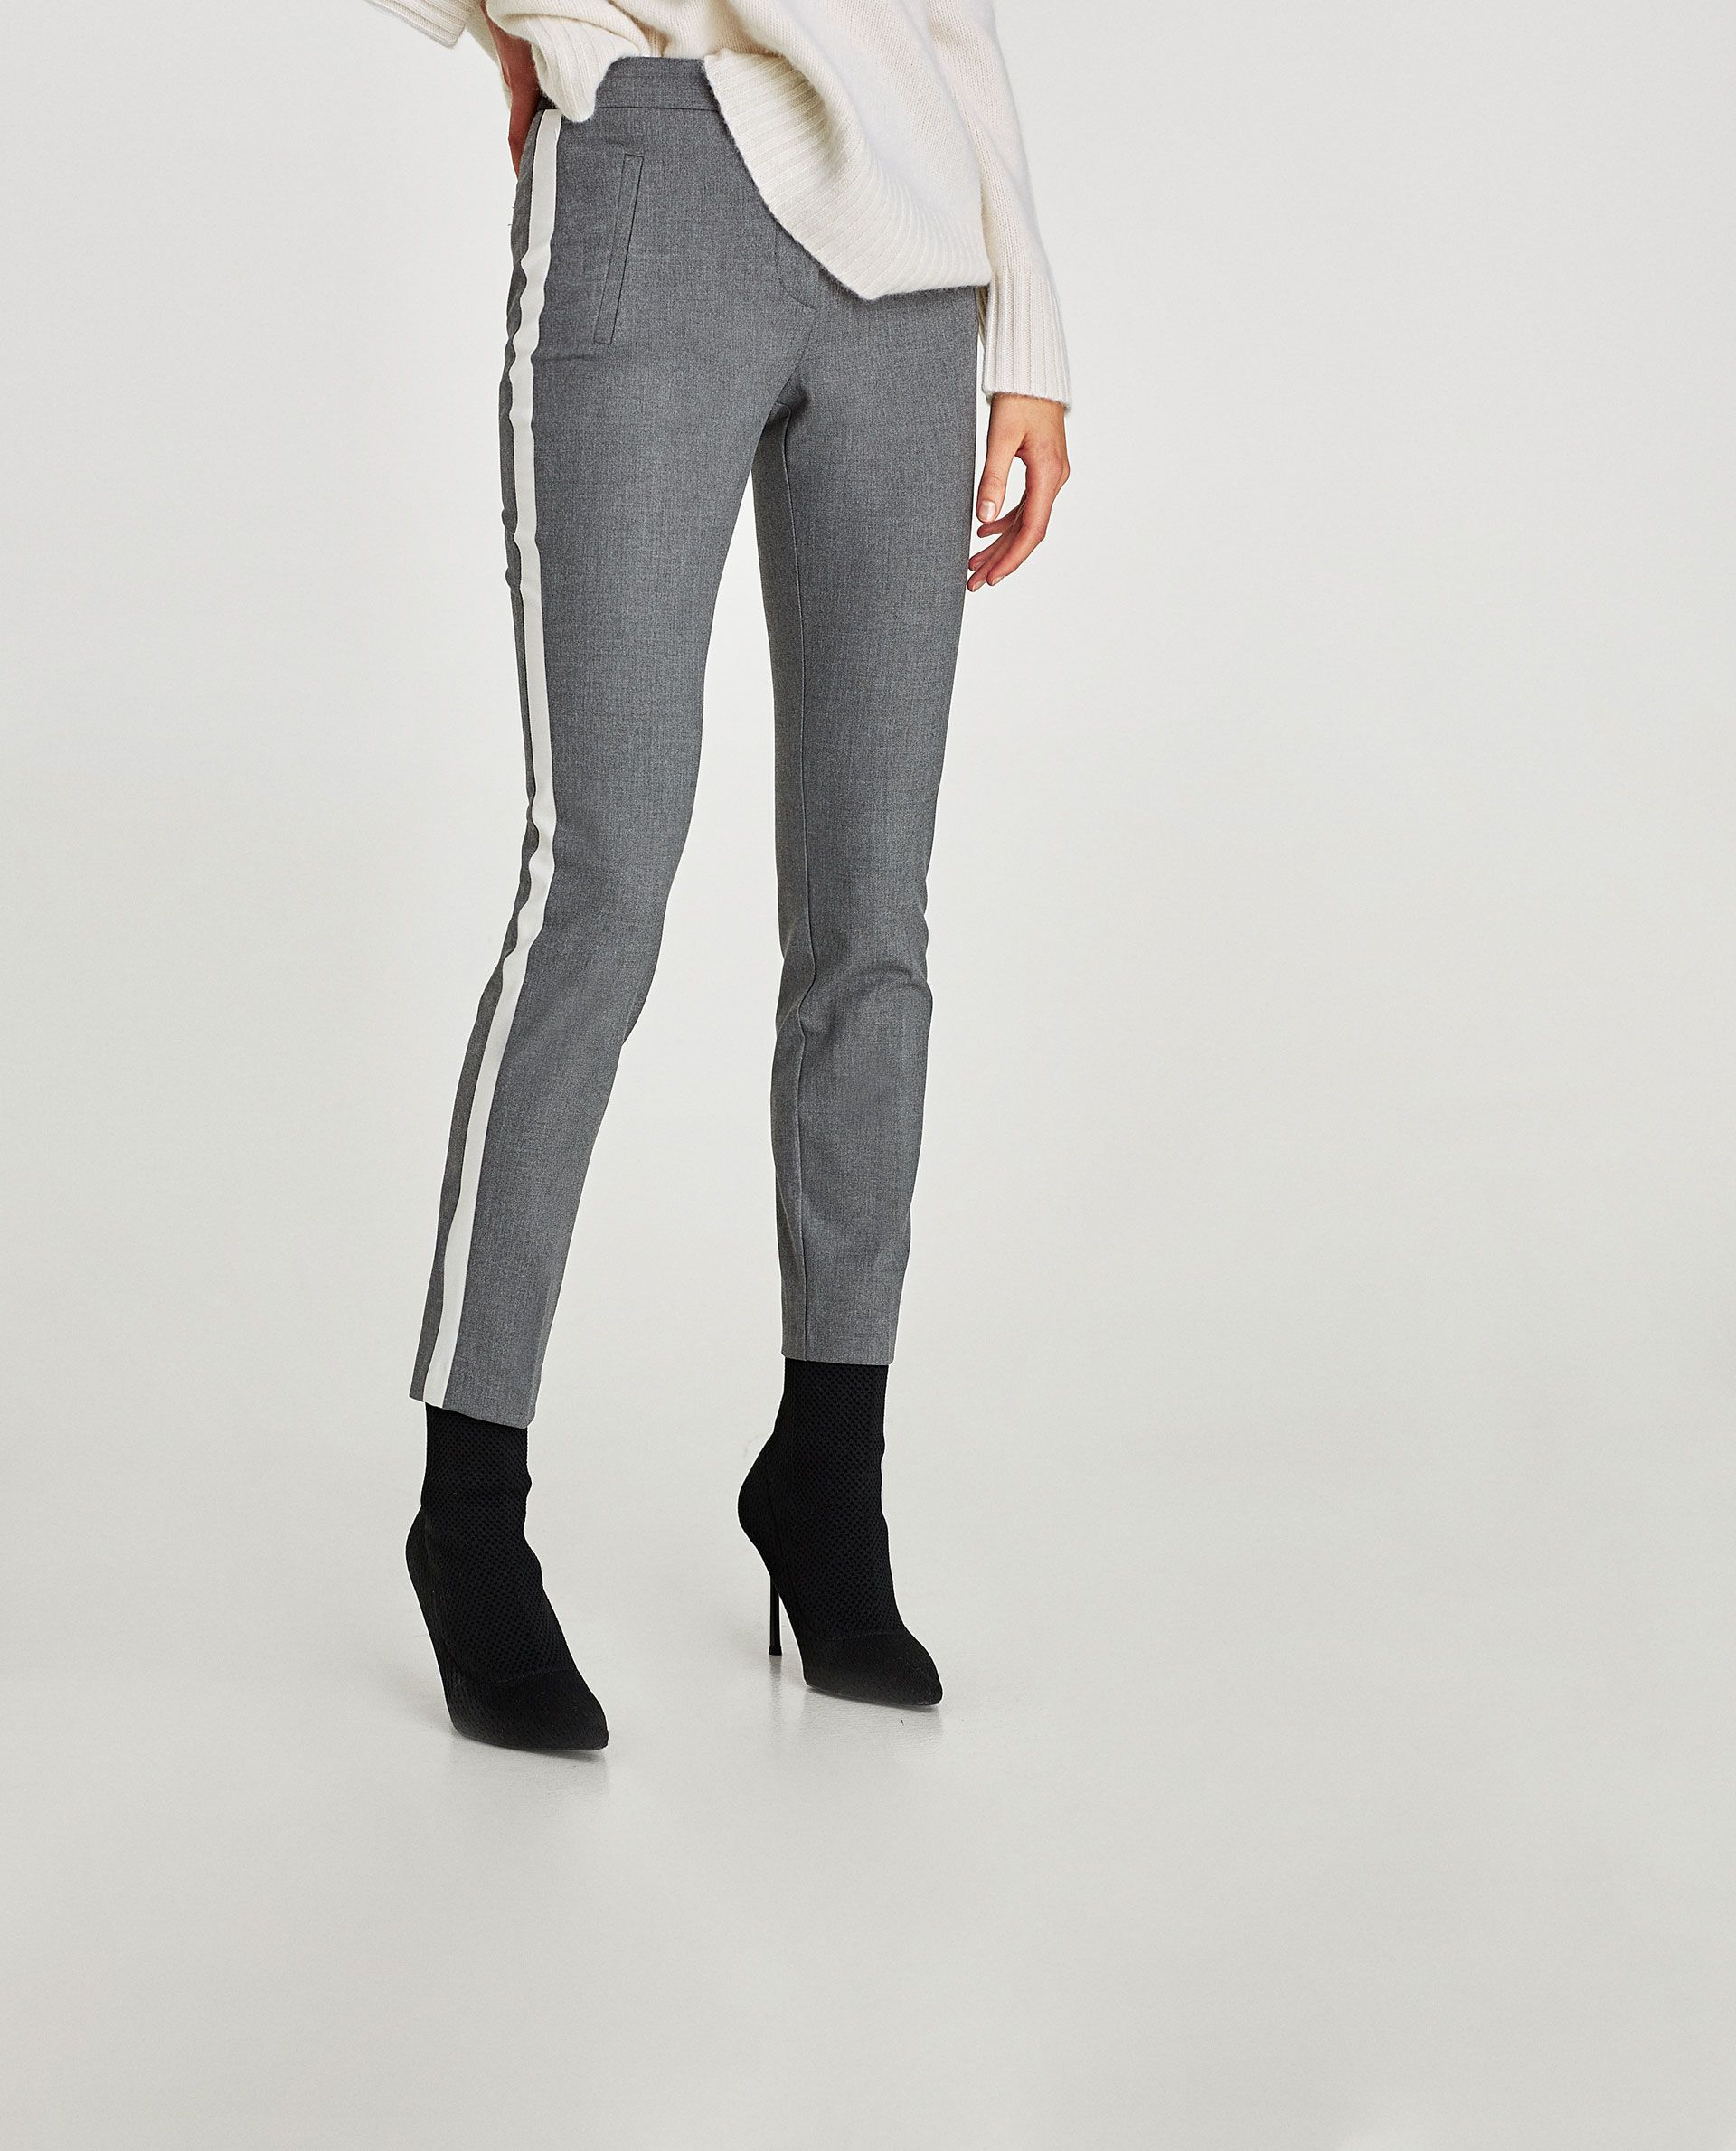 fcb0a913 Image 2 of TROUSERS WITH SIDE STRIPE from Zara | Shopping guide ...